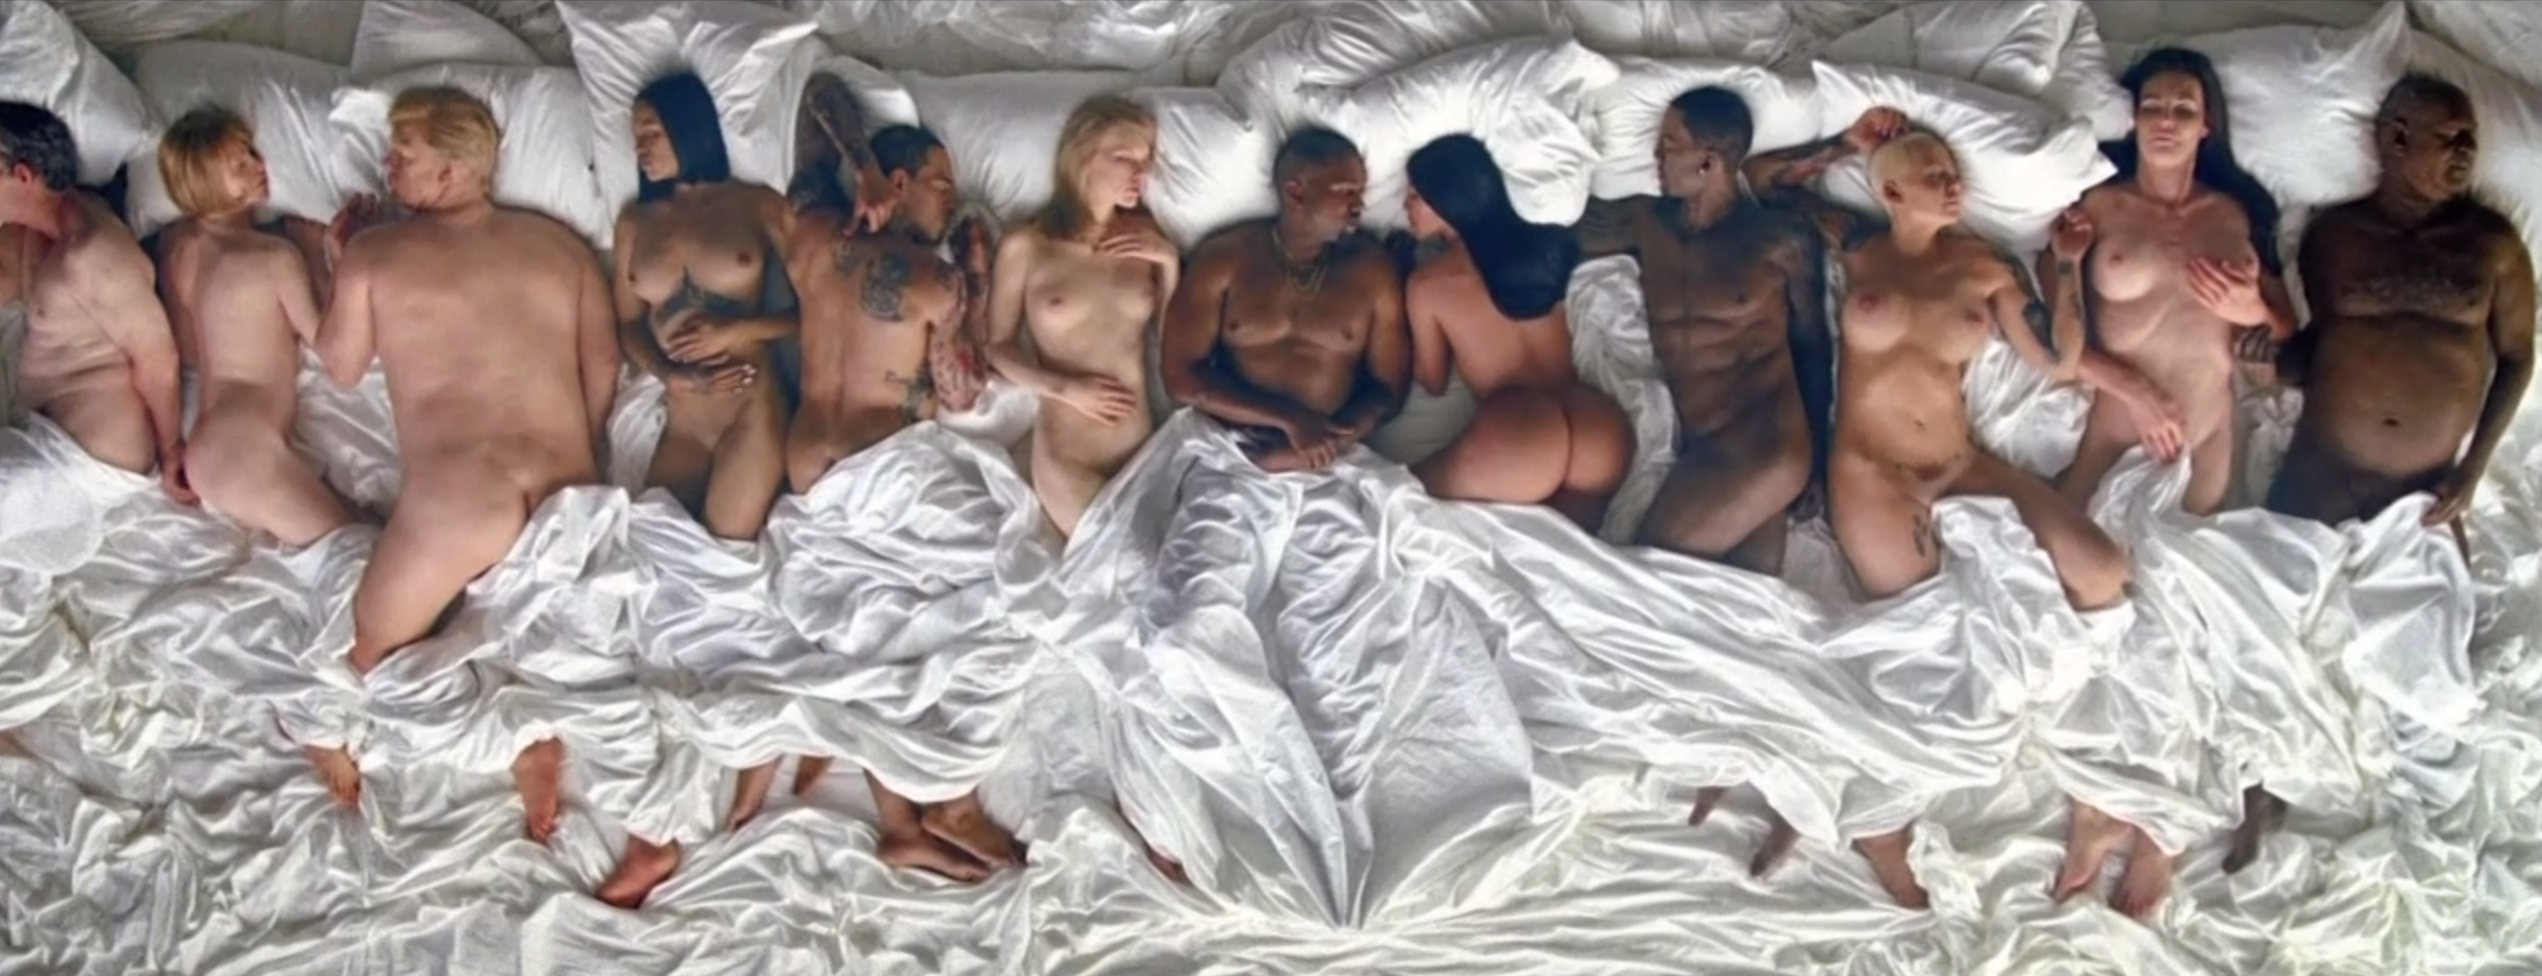 kanye famous video George W. Bush responds to Kanye Wests Famous video